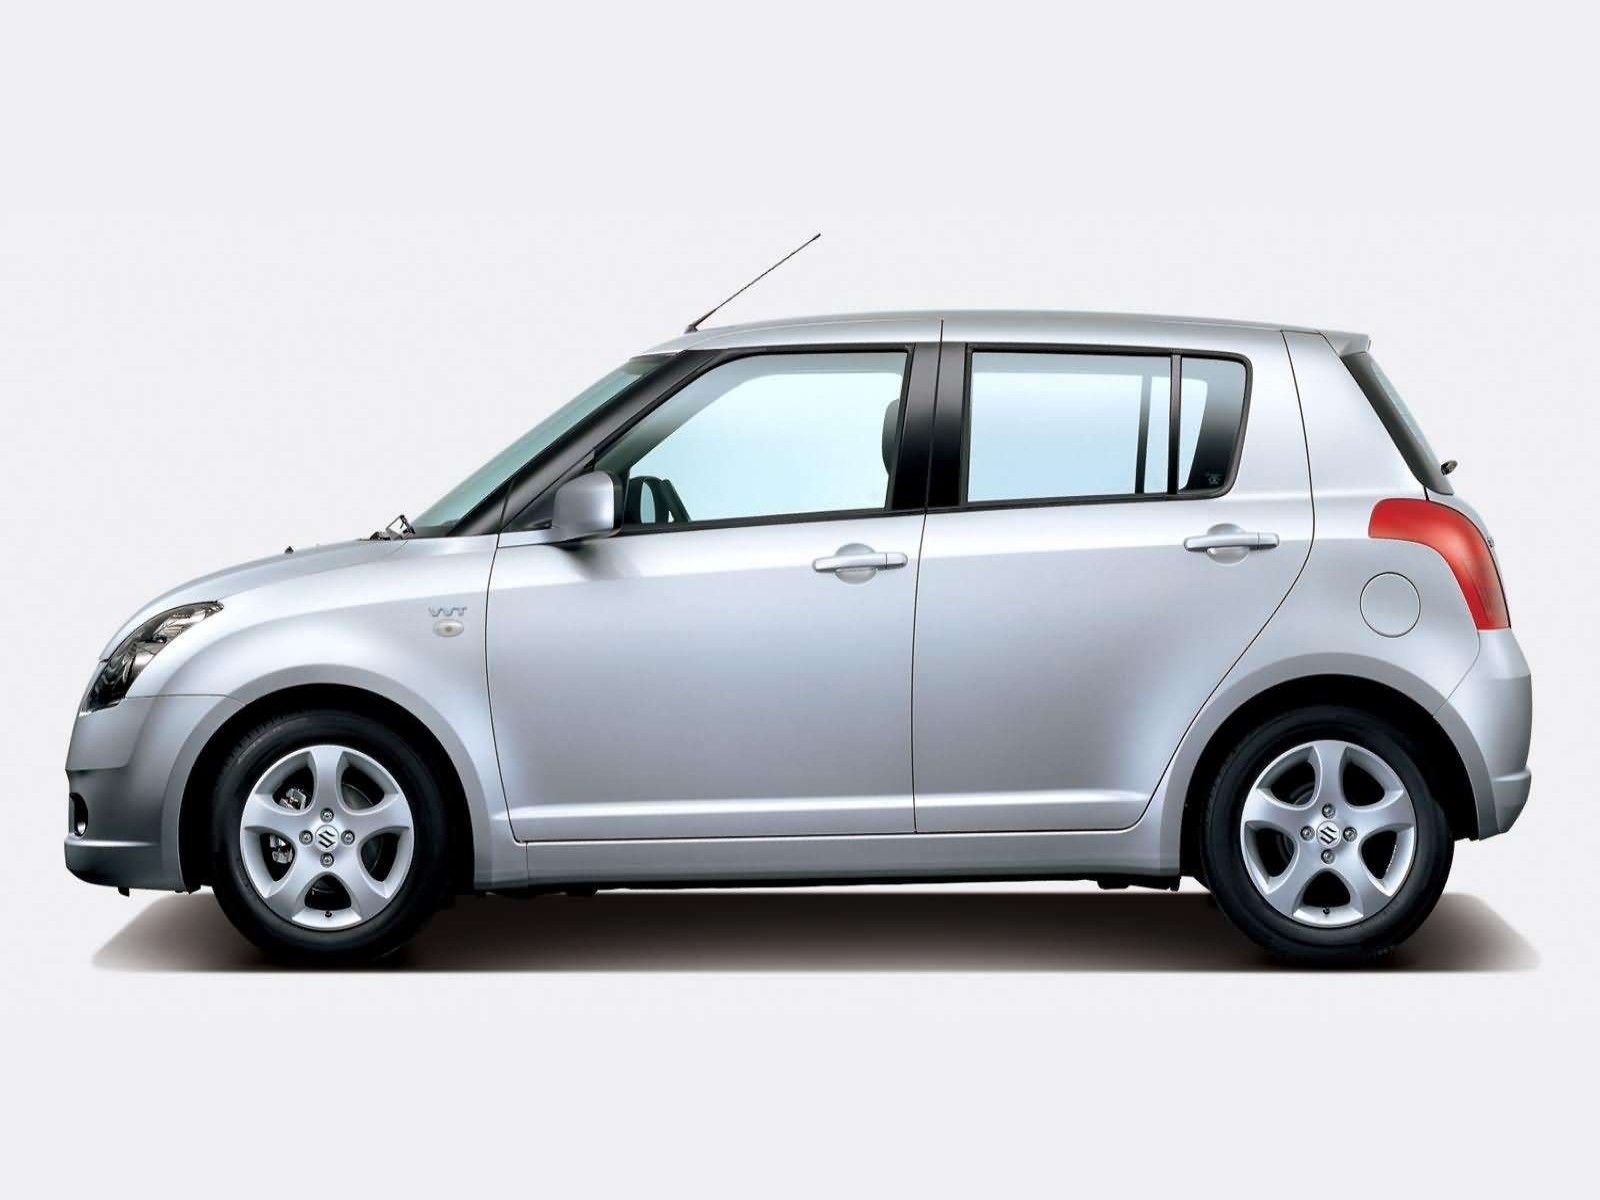 Suzuki Swift VVT model 2005 wallpaper 11